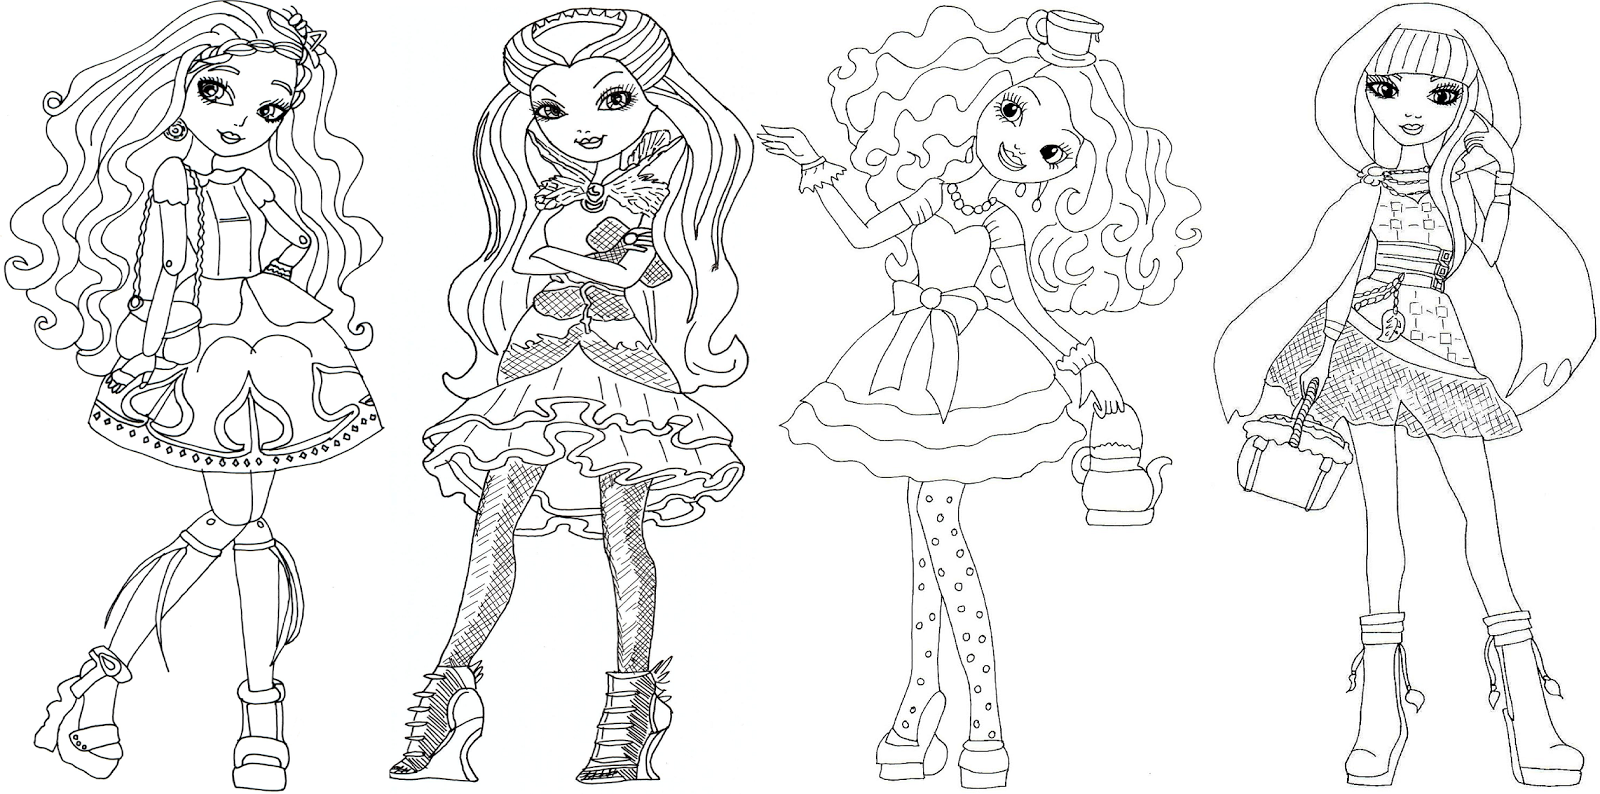 Free printable ever after high coloring pages october 2015 for Madeline coloring pages printable